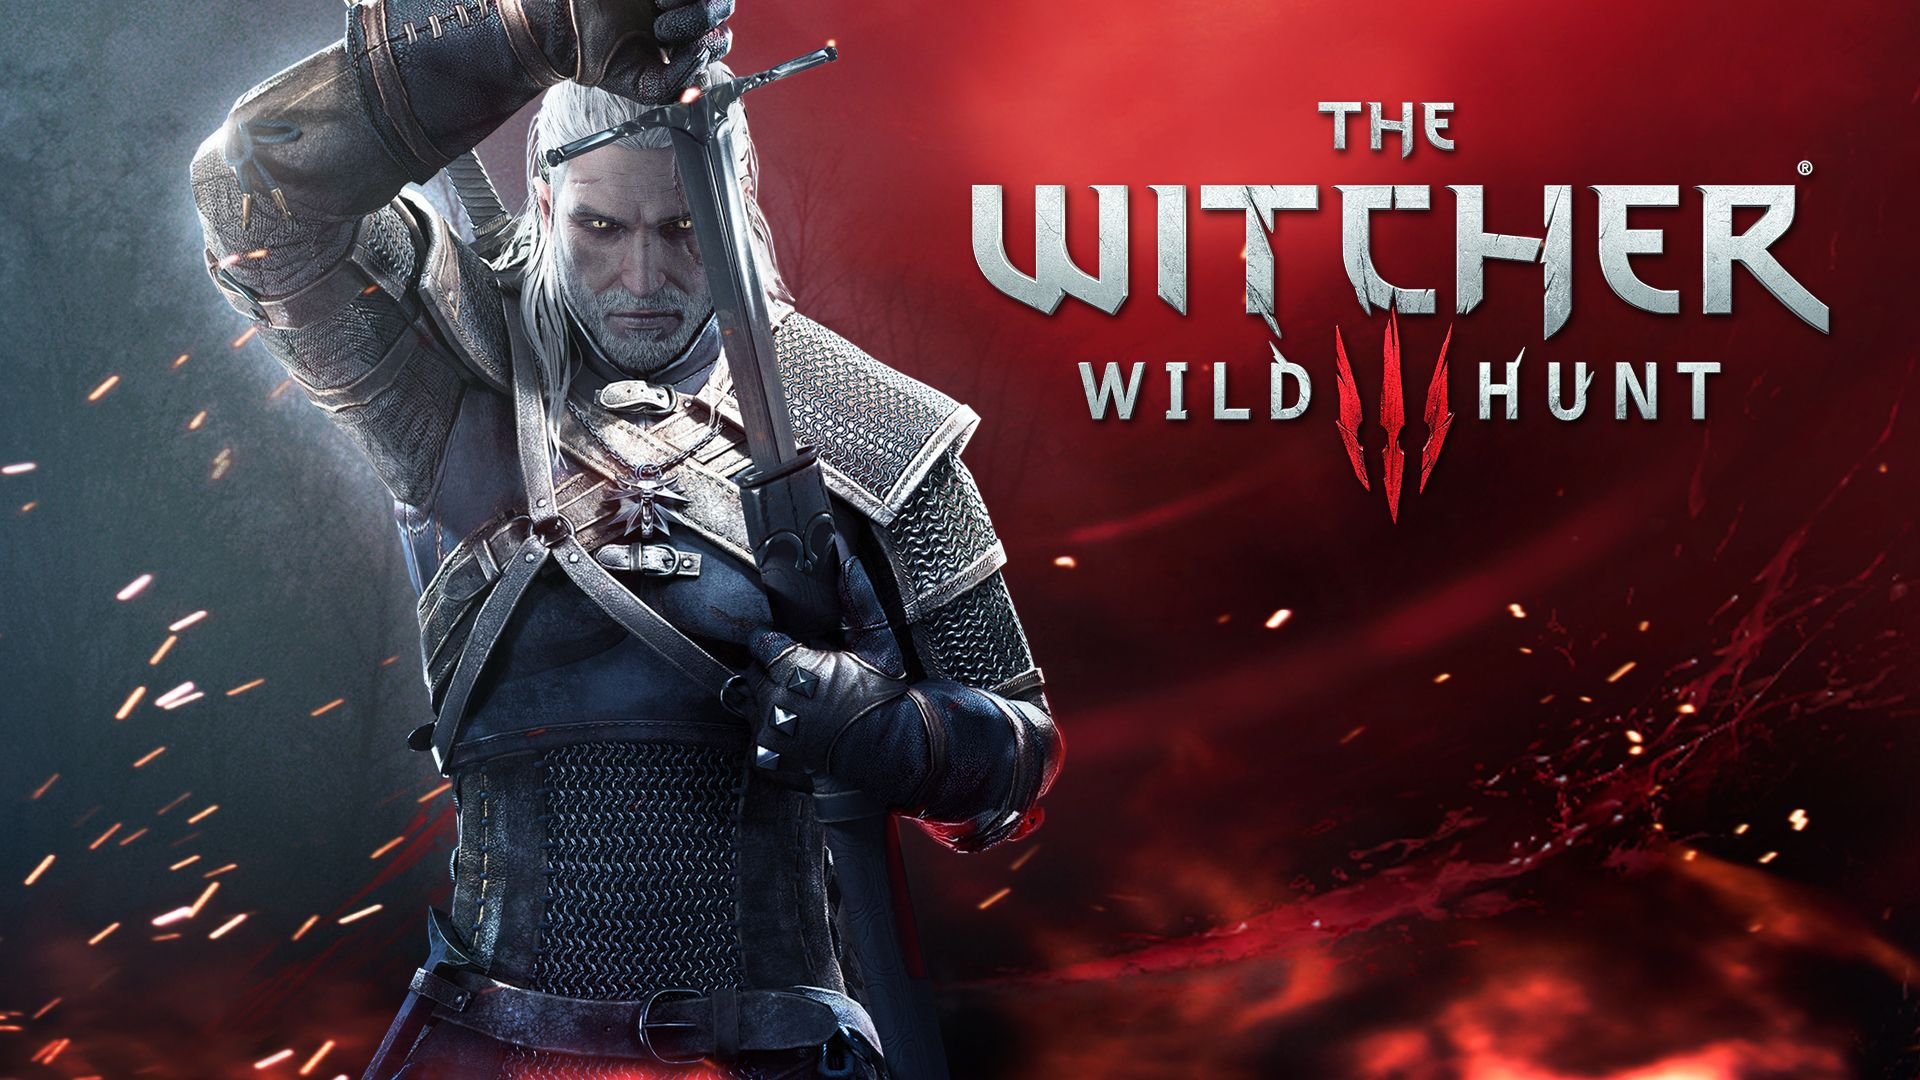 Wallpaper the witcher 3 armor geralt long hair spark